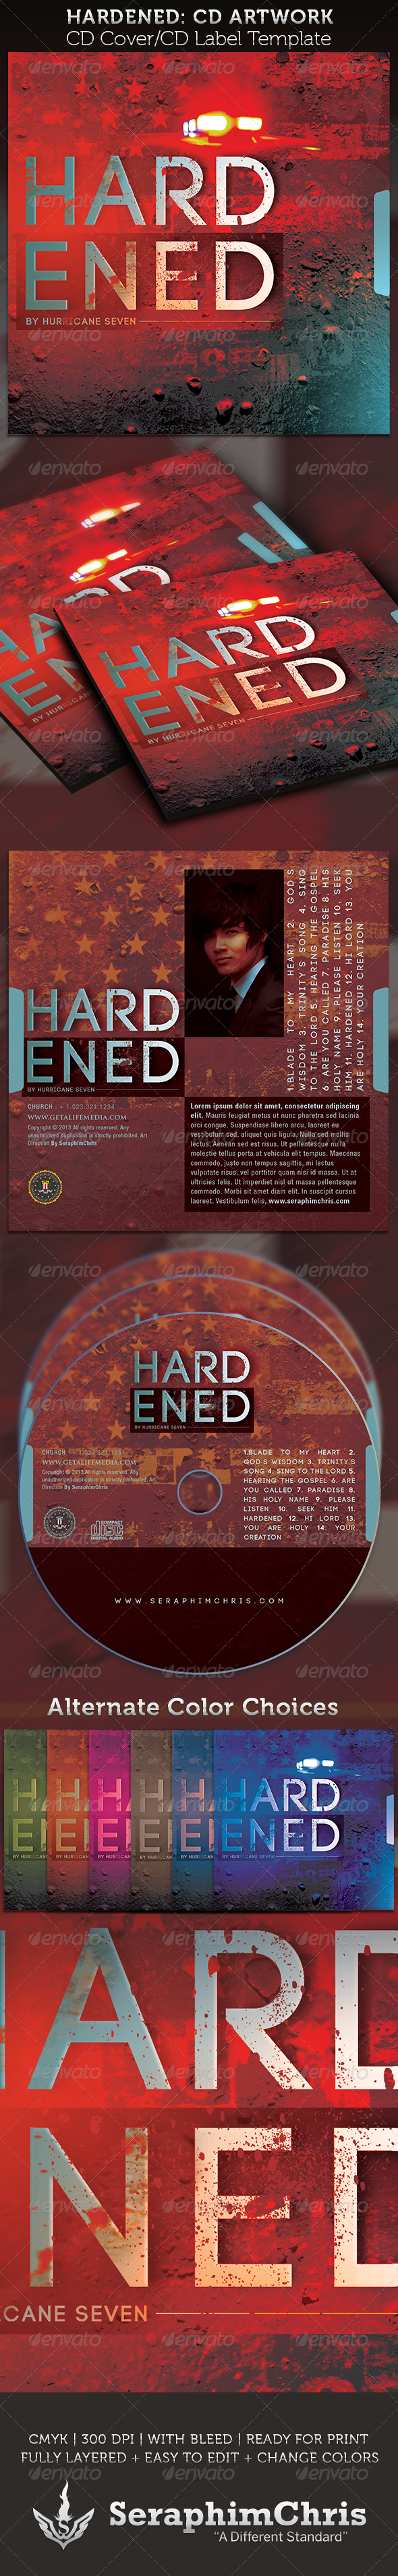 Hardened CD Cover Artwork Template - CD &amp; DVD artwork Print Templates